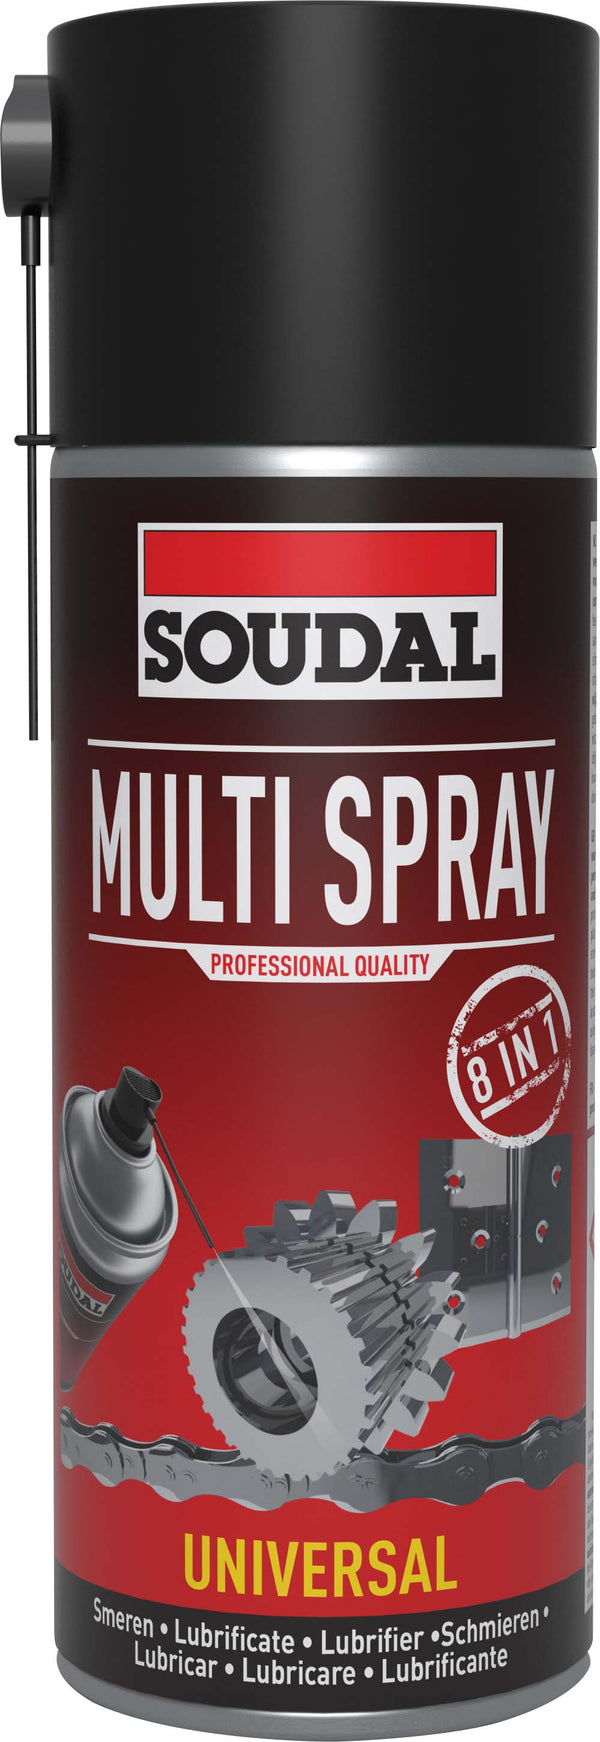 Multi Spray Soudal